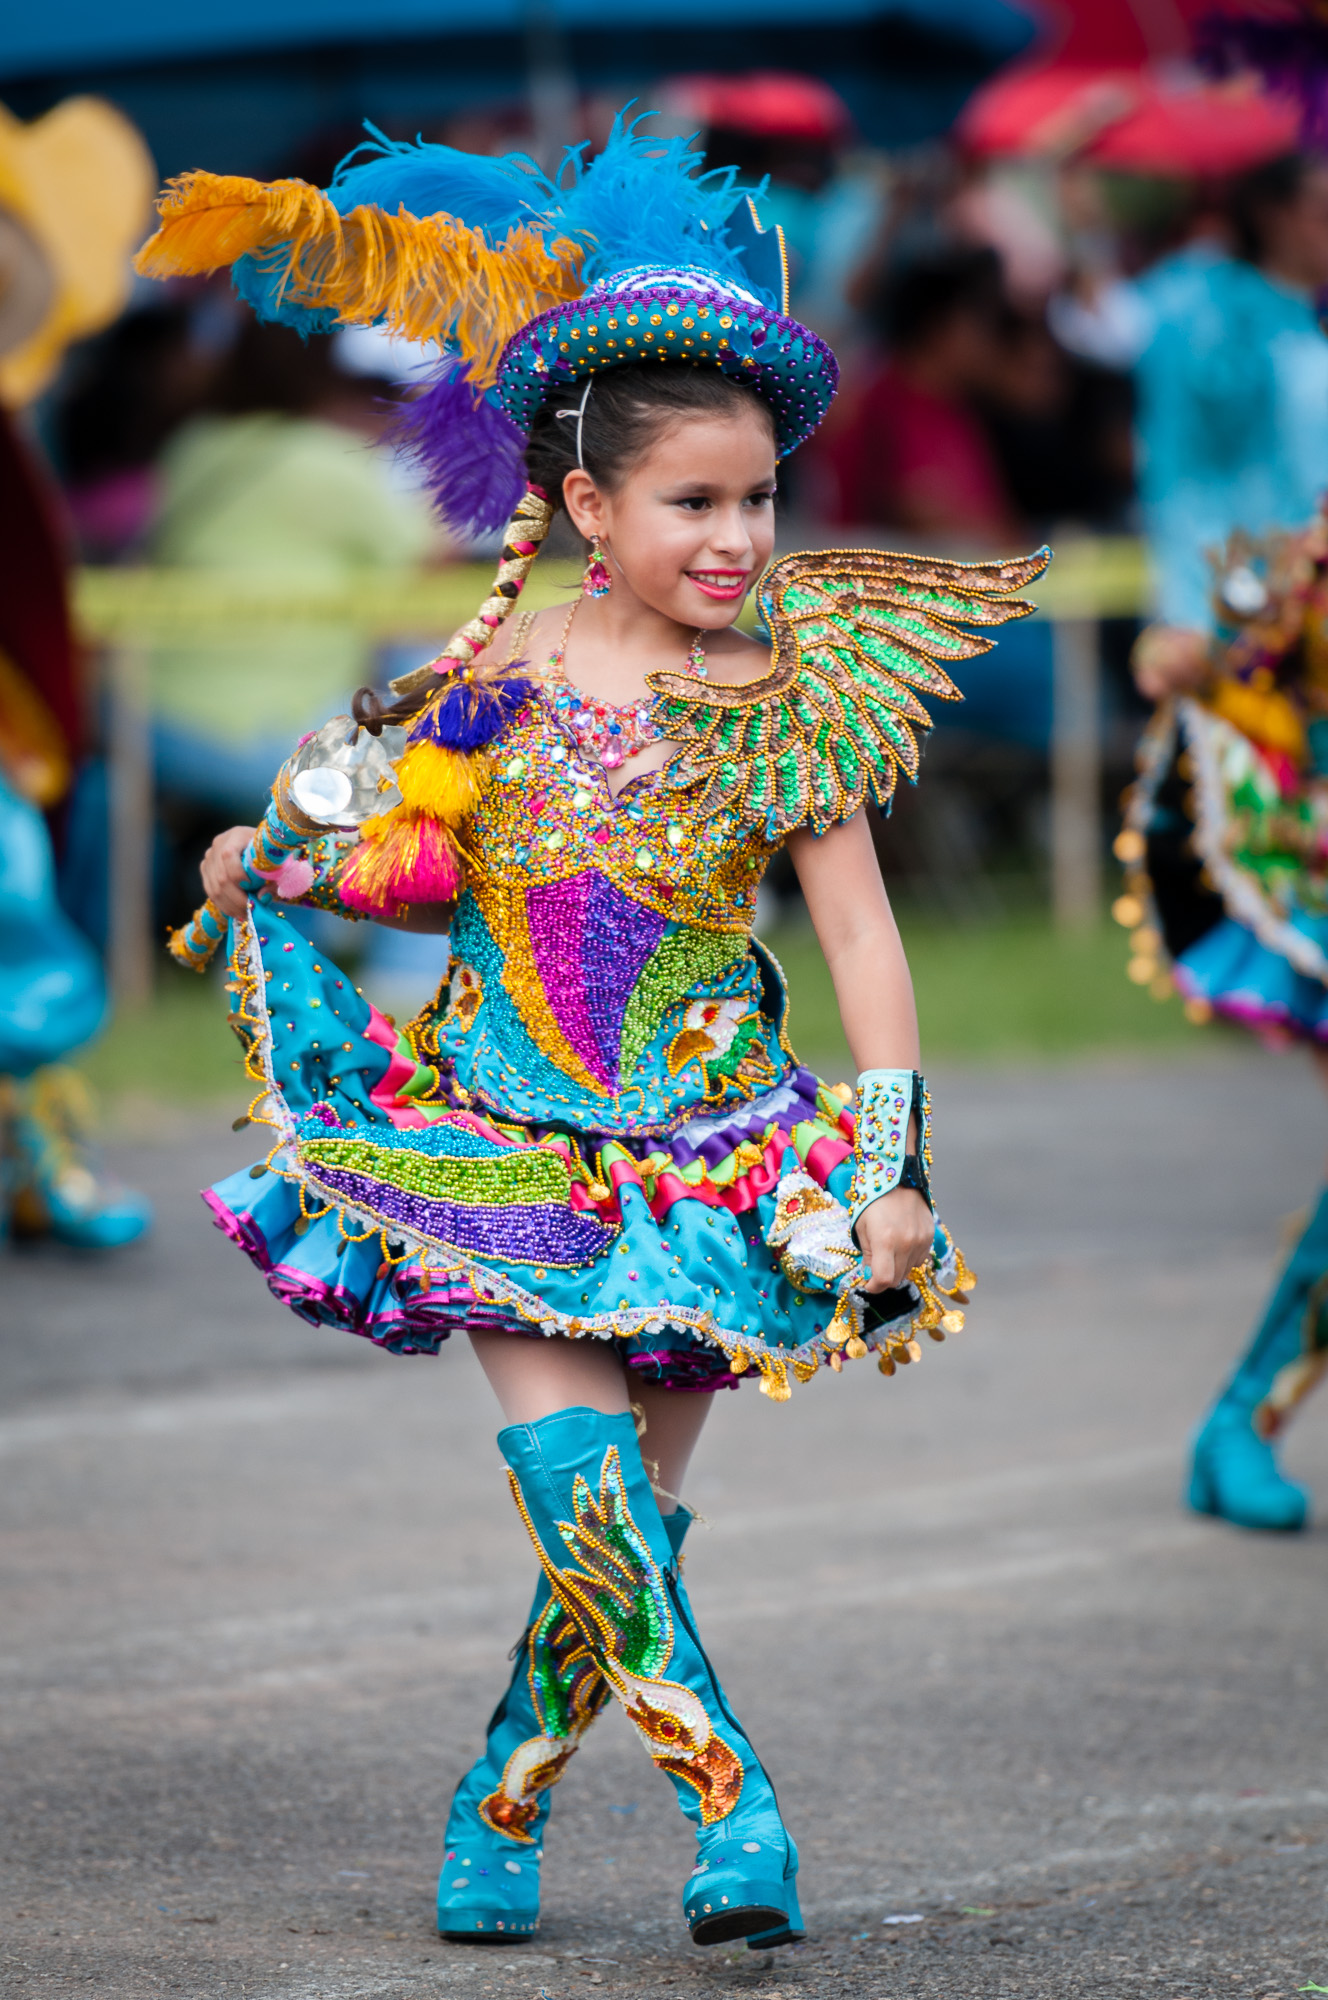 There were performers of all ages, including this young one from Morenada Central VA USA performing a Morenada dance.